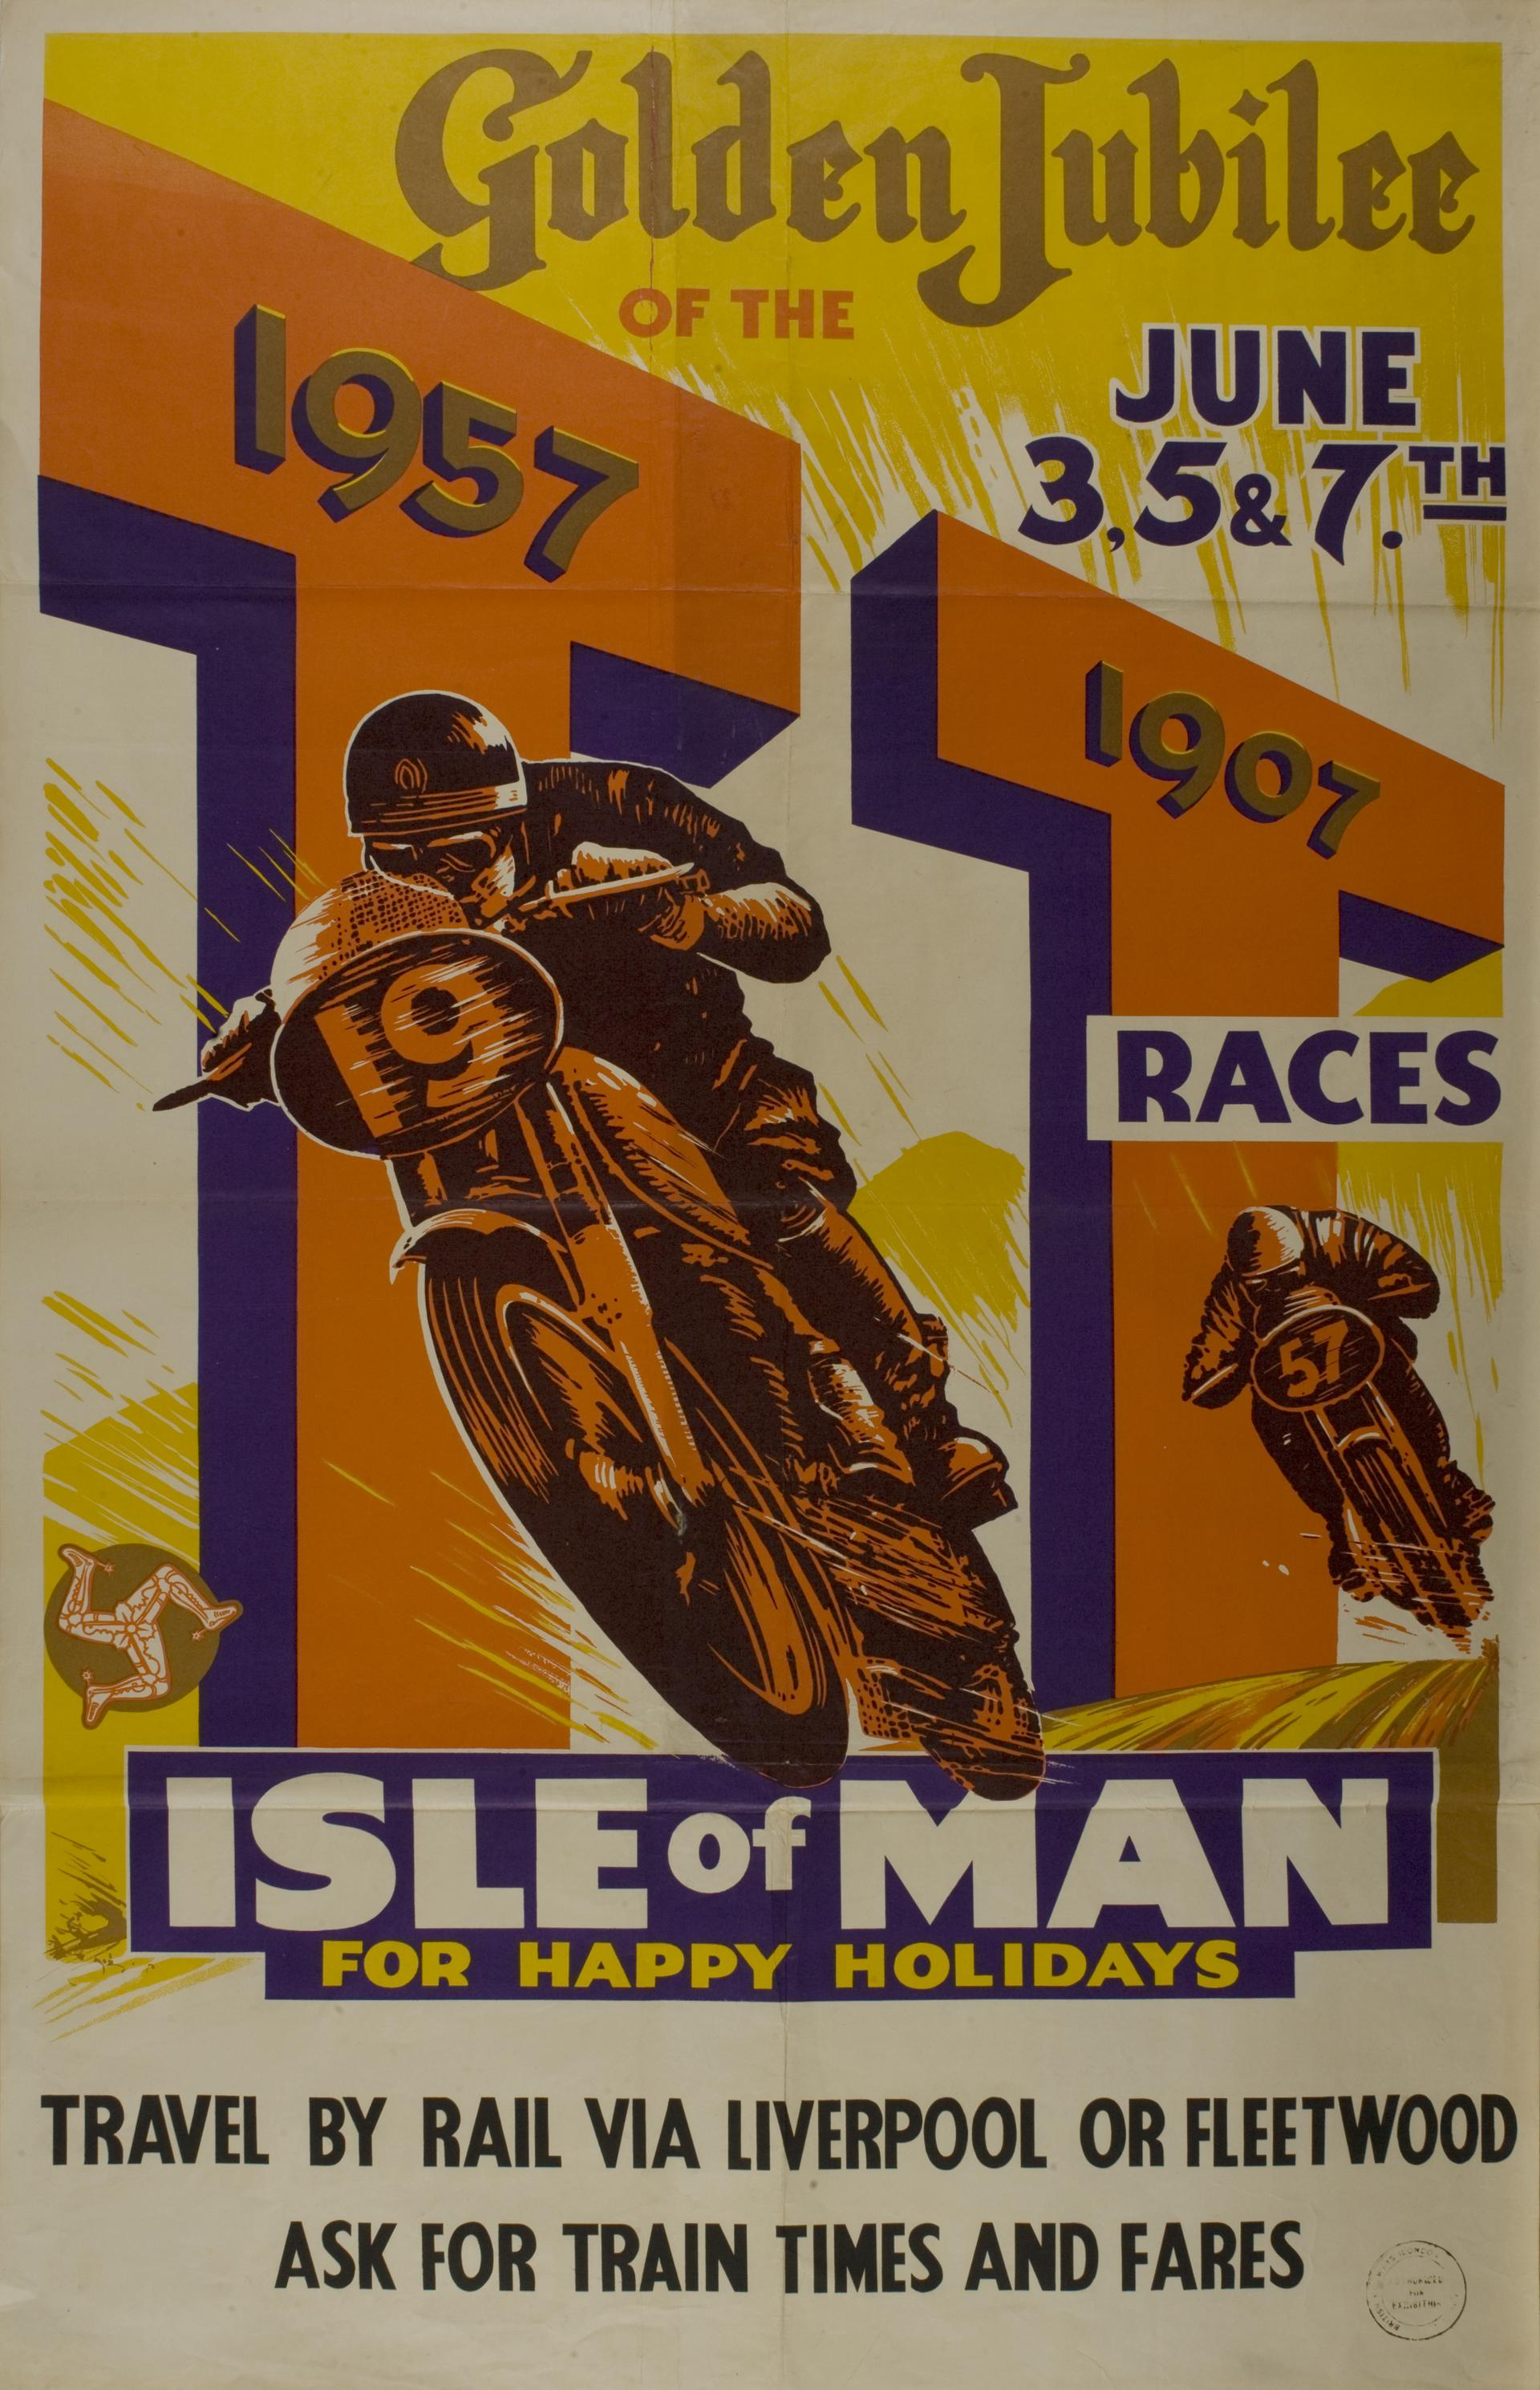 Golden Jubilee of the TT Races 1907-1957 - Print & Poster Archive - iMuseum